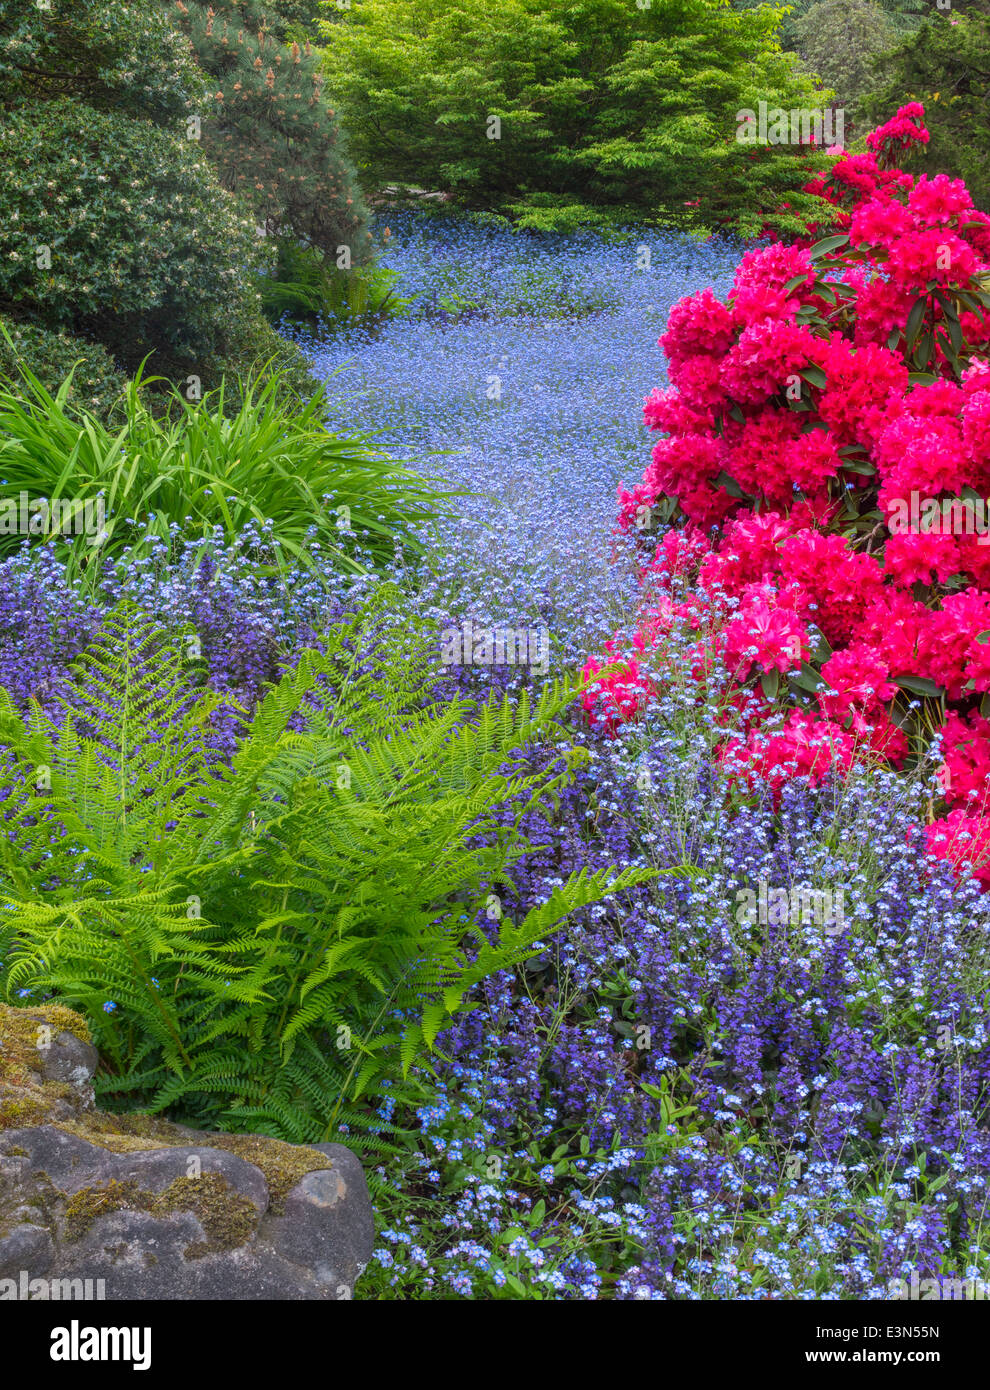 Seattle, WA Kubota Garden city park, spring view of blue forget-me-nots among red rhododendron blossoms - Stock Image